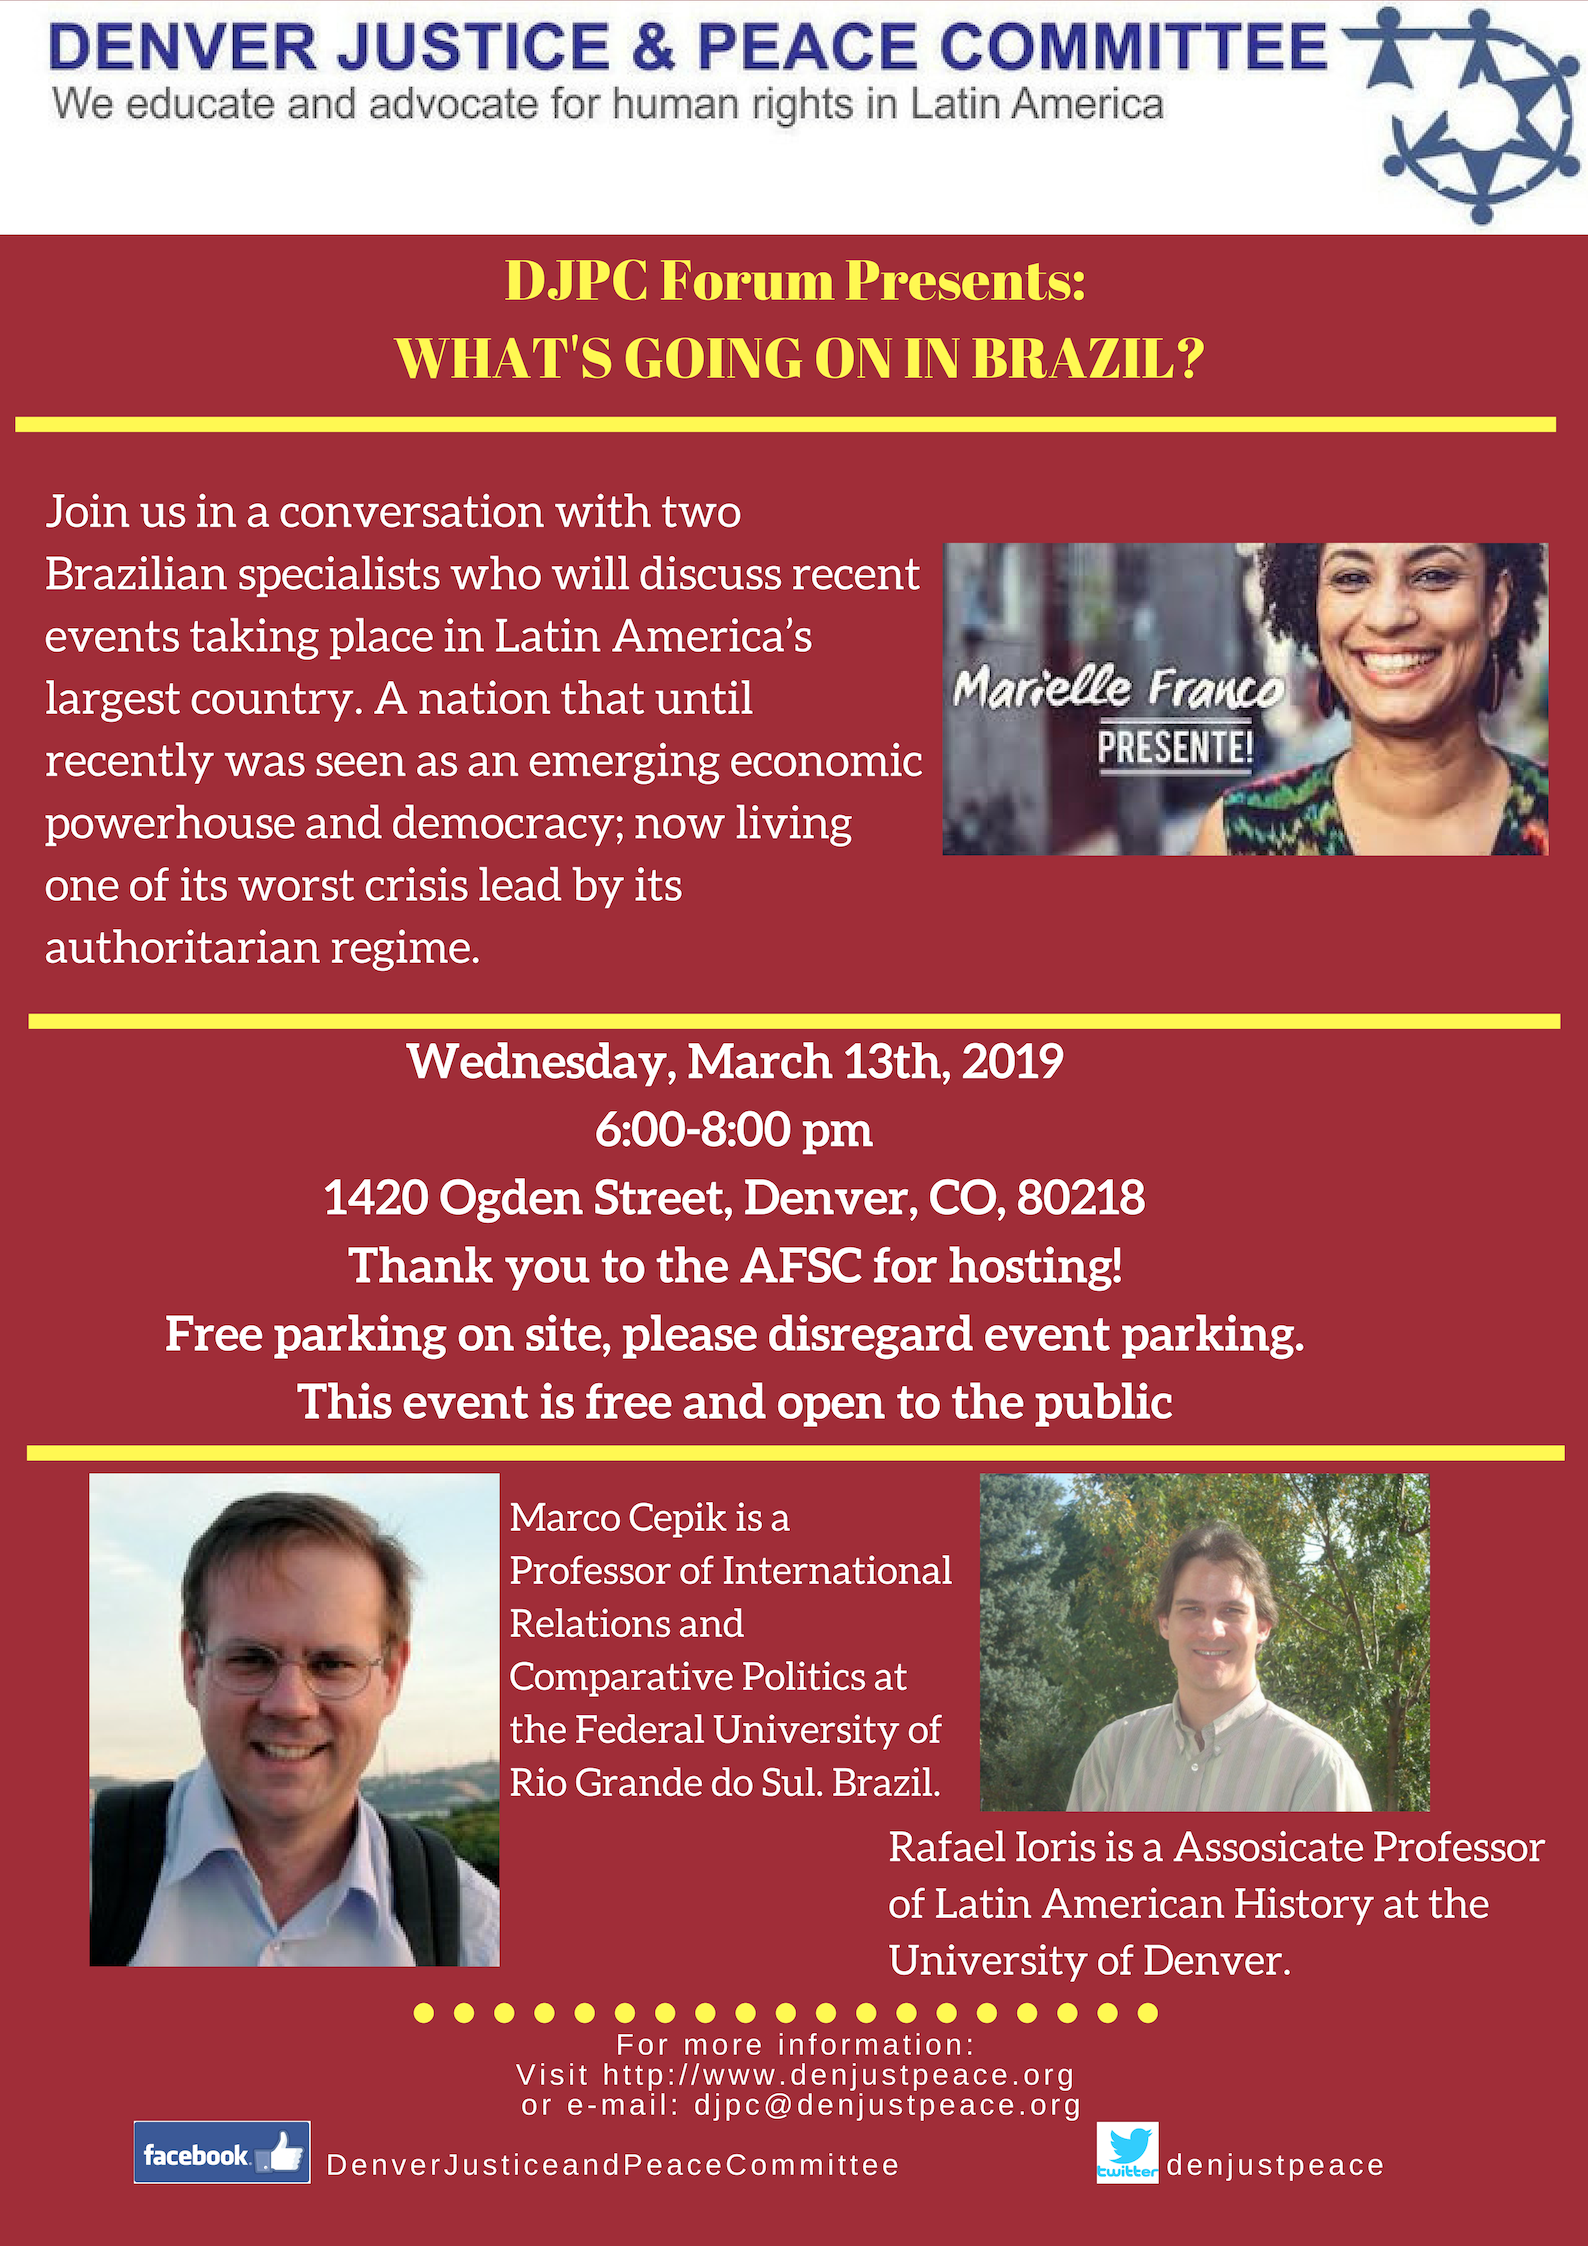 DJPC Forum Presents: What is going on in Brazil? Wednesday April 17th at 6pm